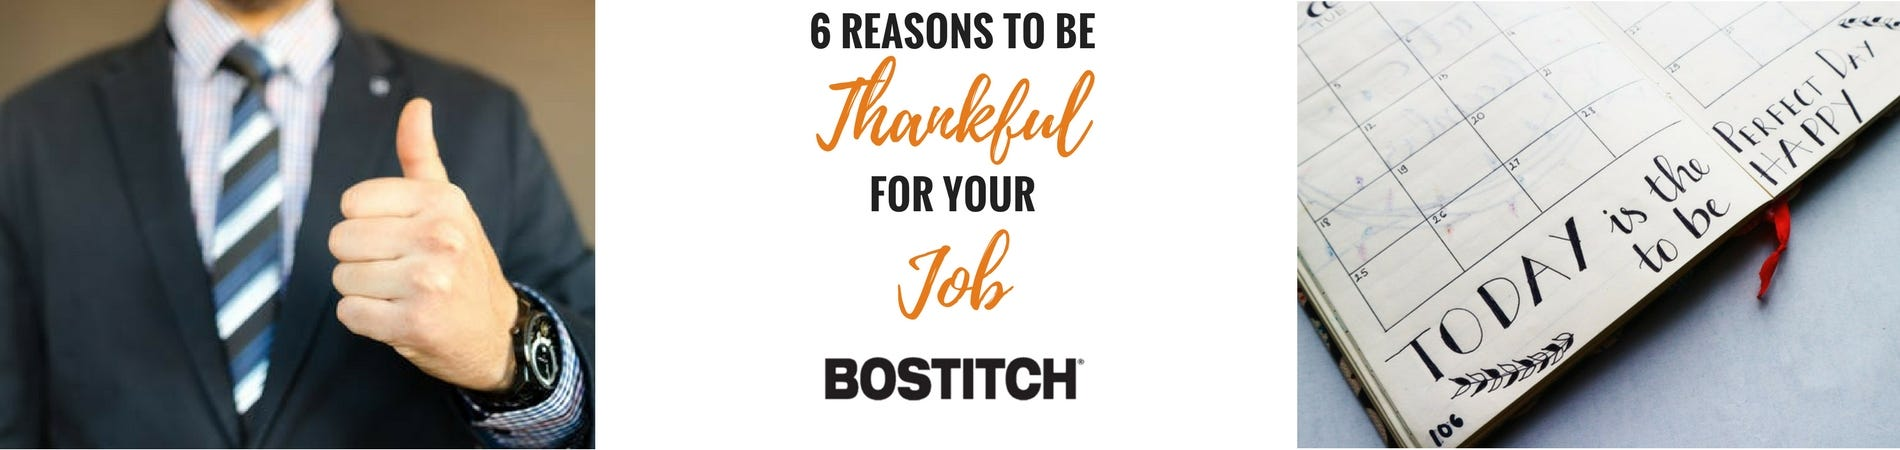 6 Reasons to Be Thankful for Your Job